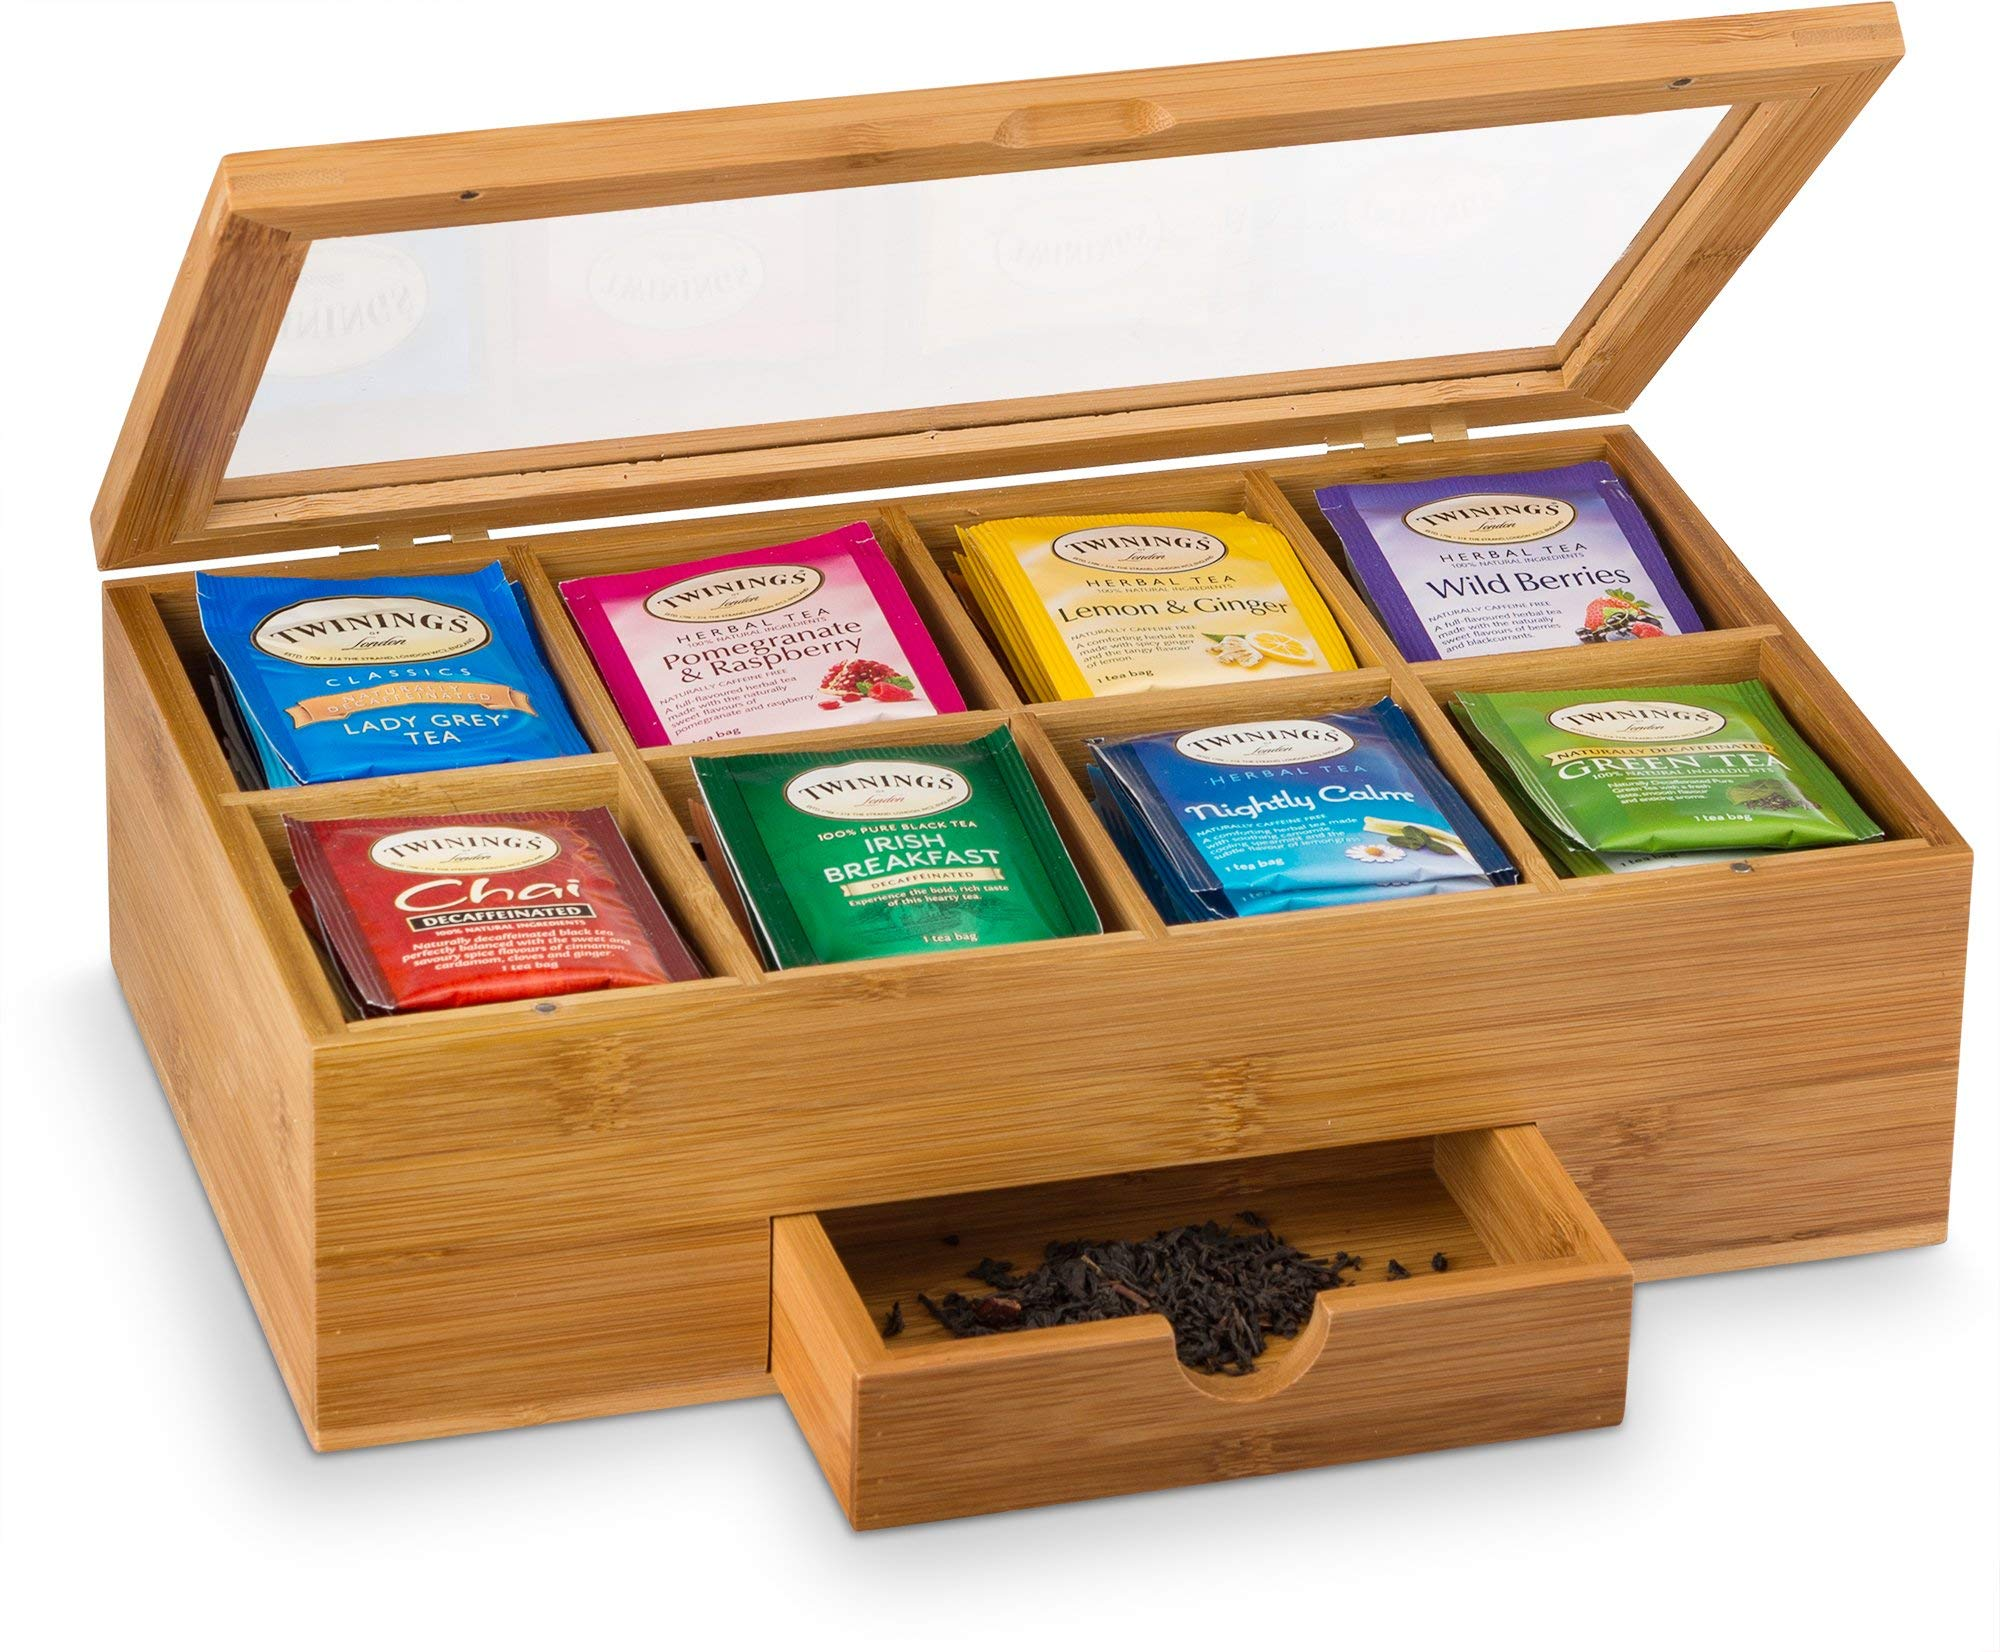 (Renewed) Bamboo Tea Box - Wooden Tea Chest Storage Organizer with Small Drawer for Loose Tea and Spoons | Great Mothers Day Gift Idea